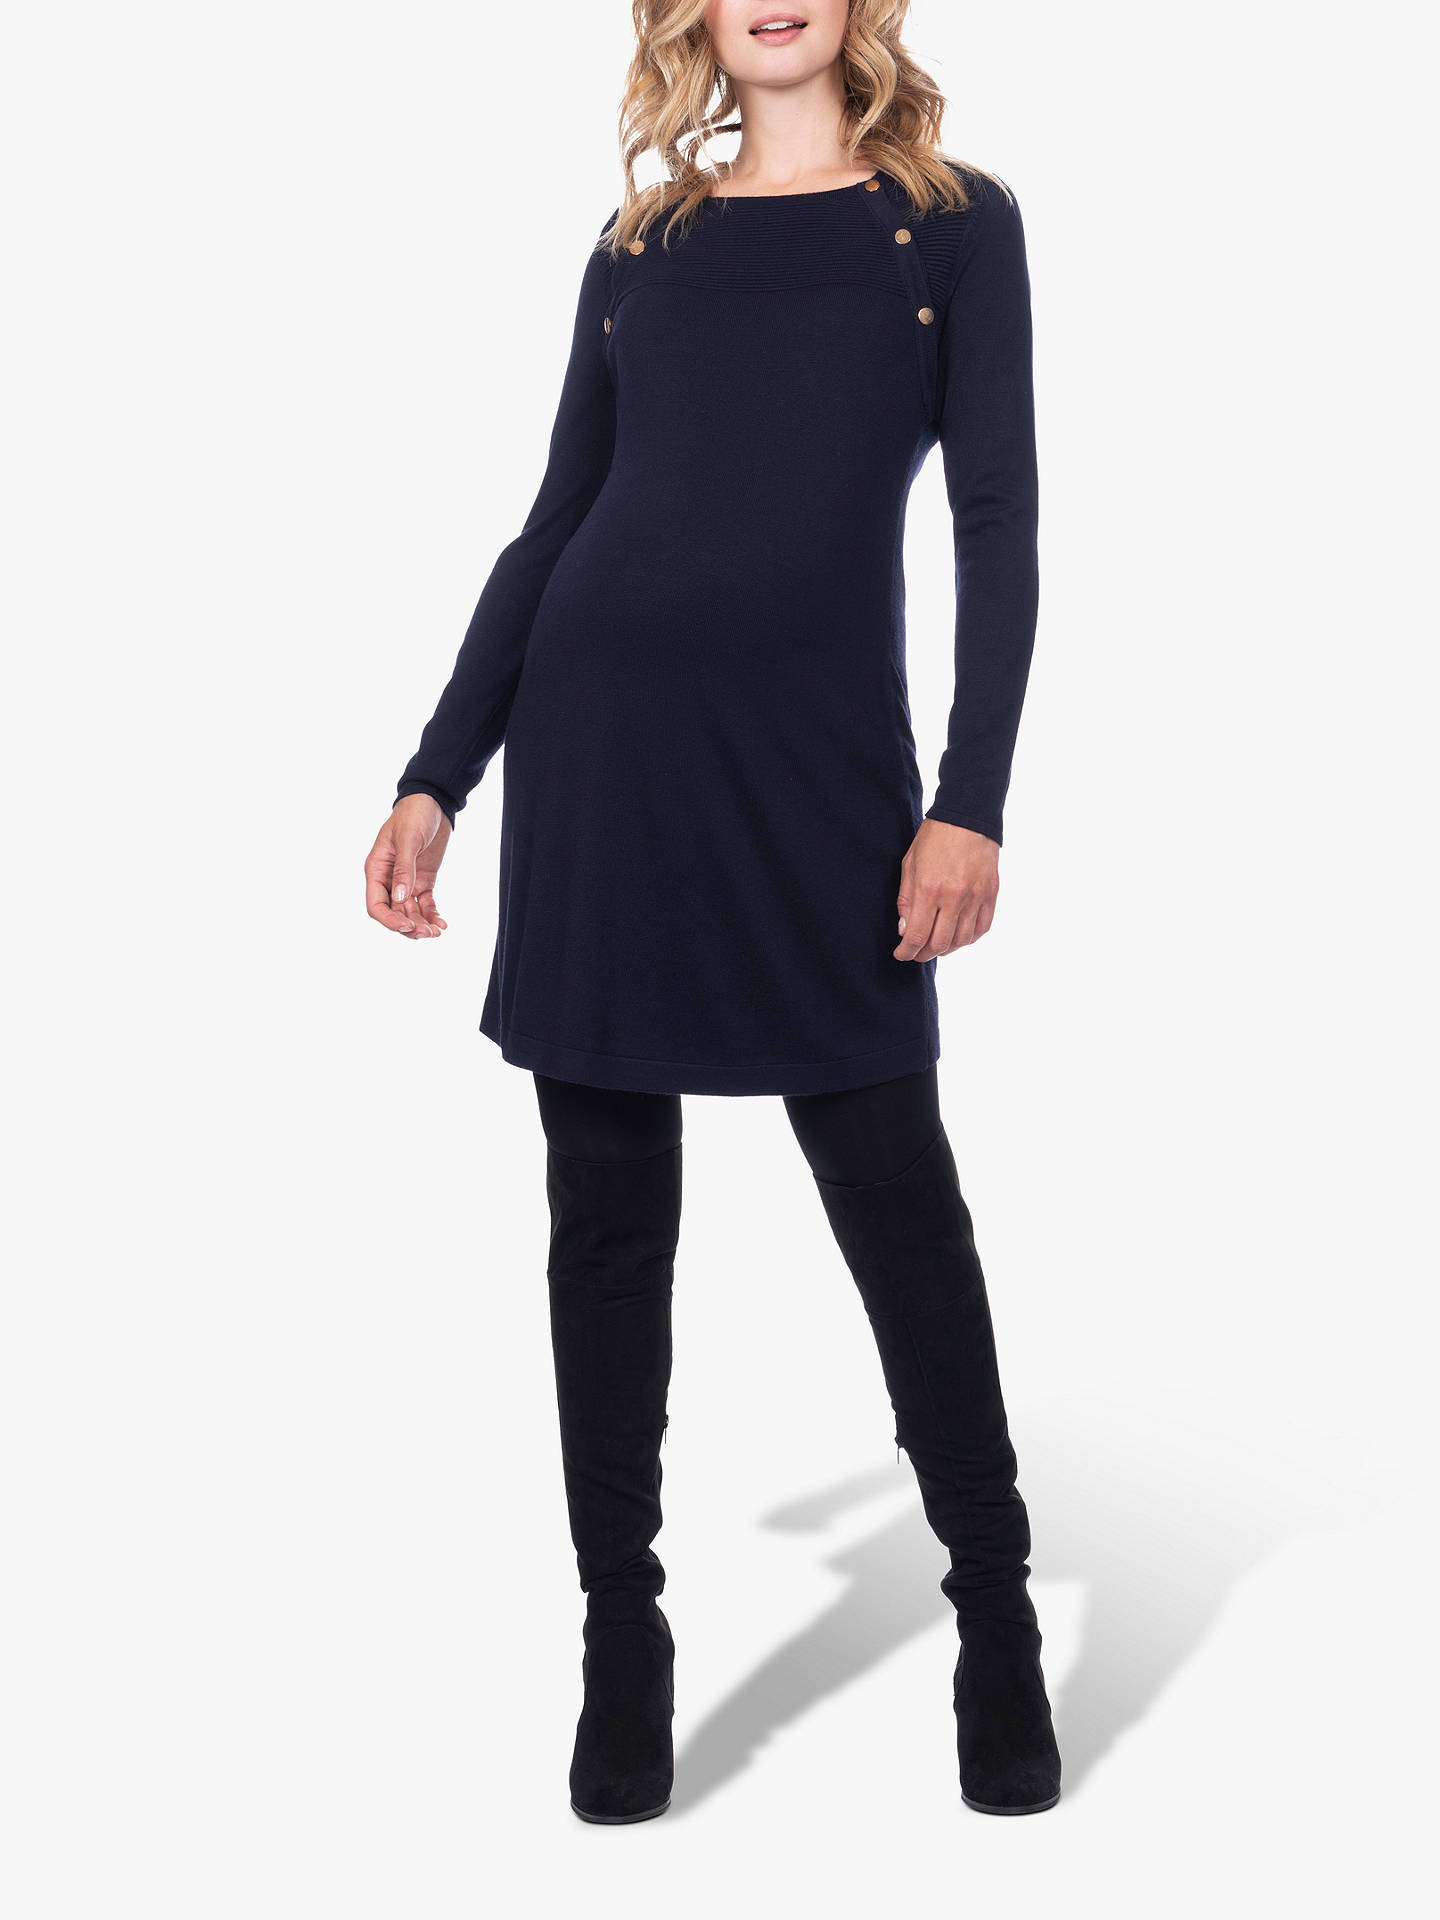 Buy Séraphine Eloise Knit Maternity and Nursing Dress, Navy/White, 8 Online at johnlewis.com